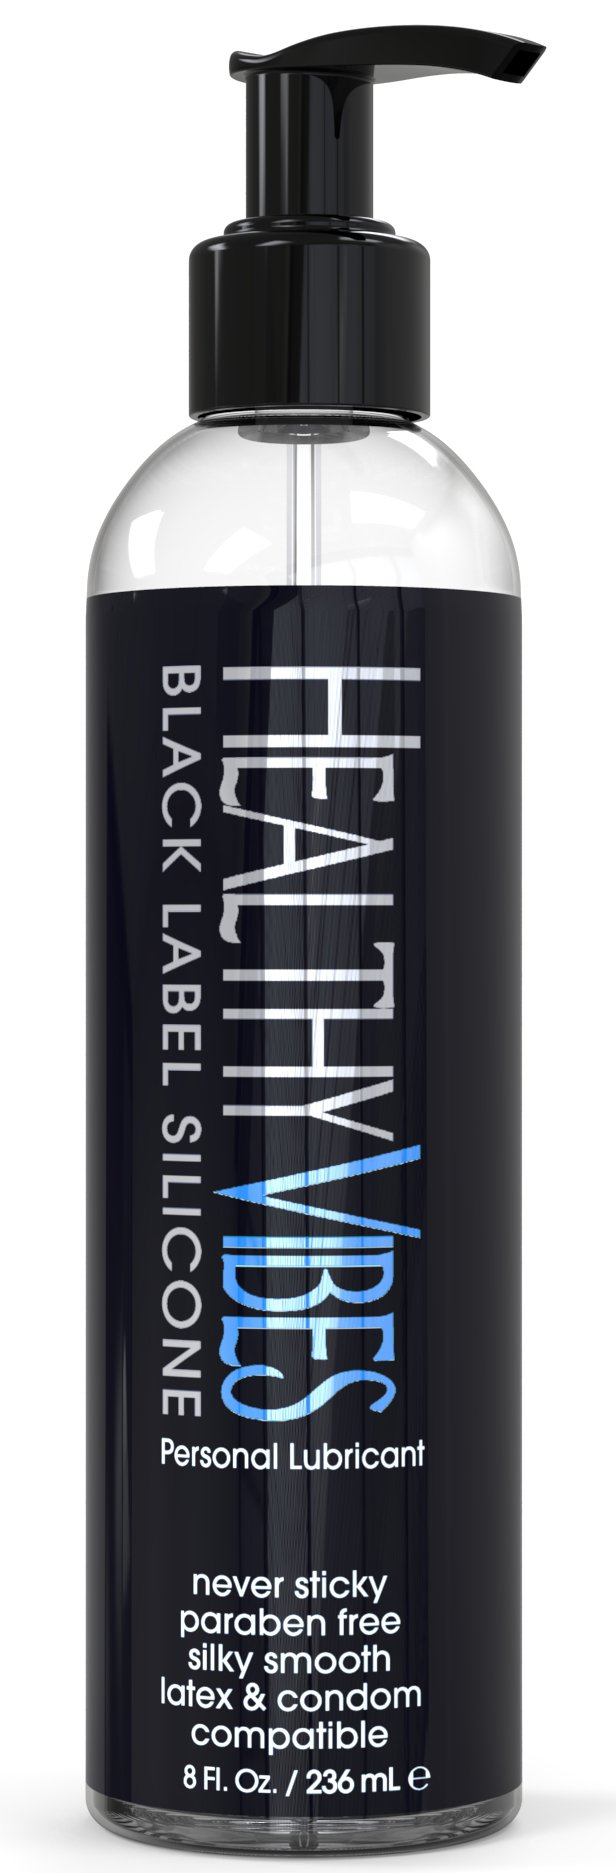 Silicone Based Personal Lubricant By Healthy Vibes, 8 Fl Oz, Black Label